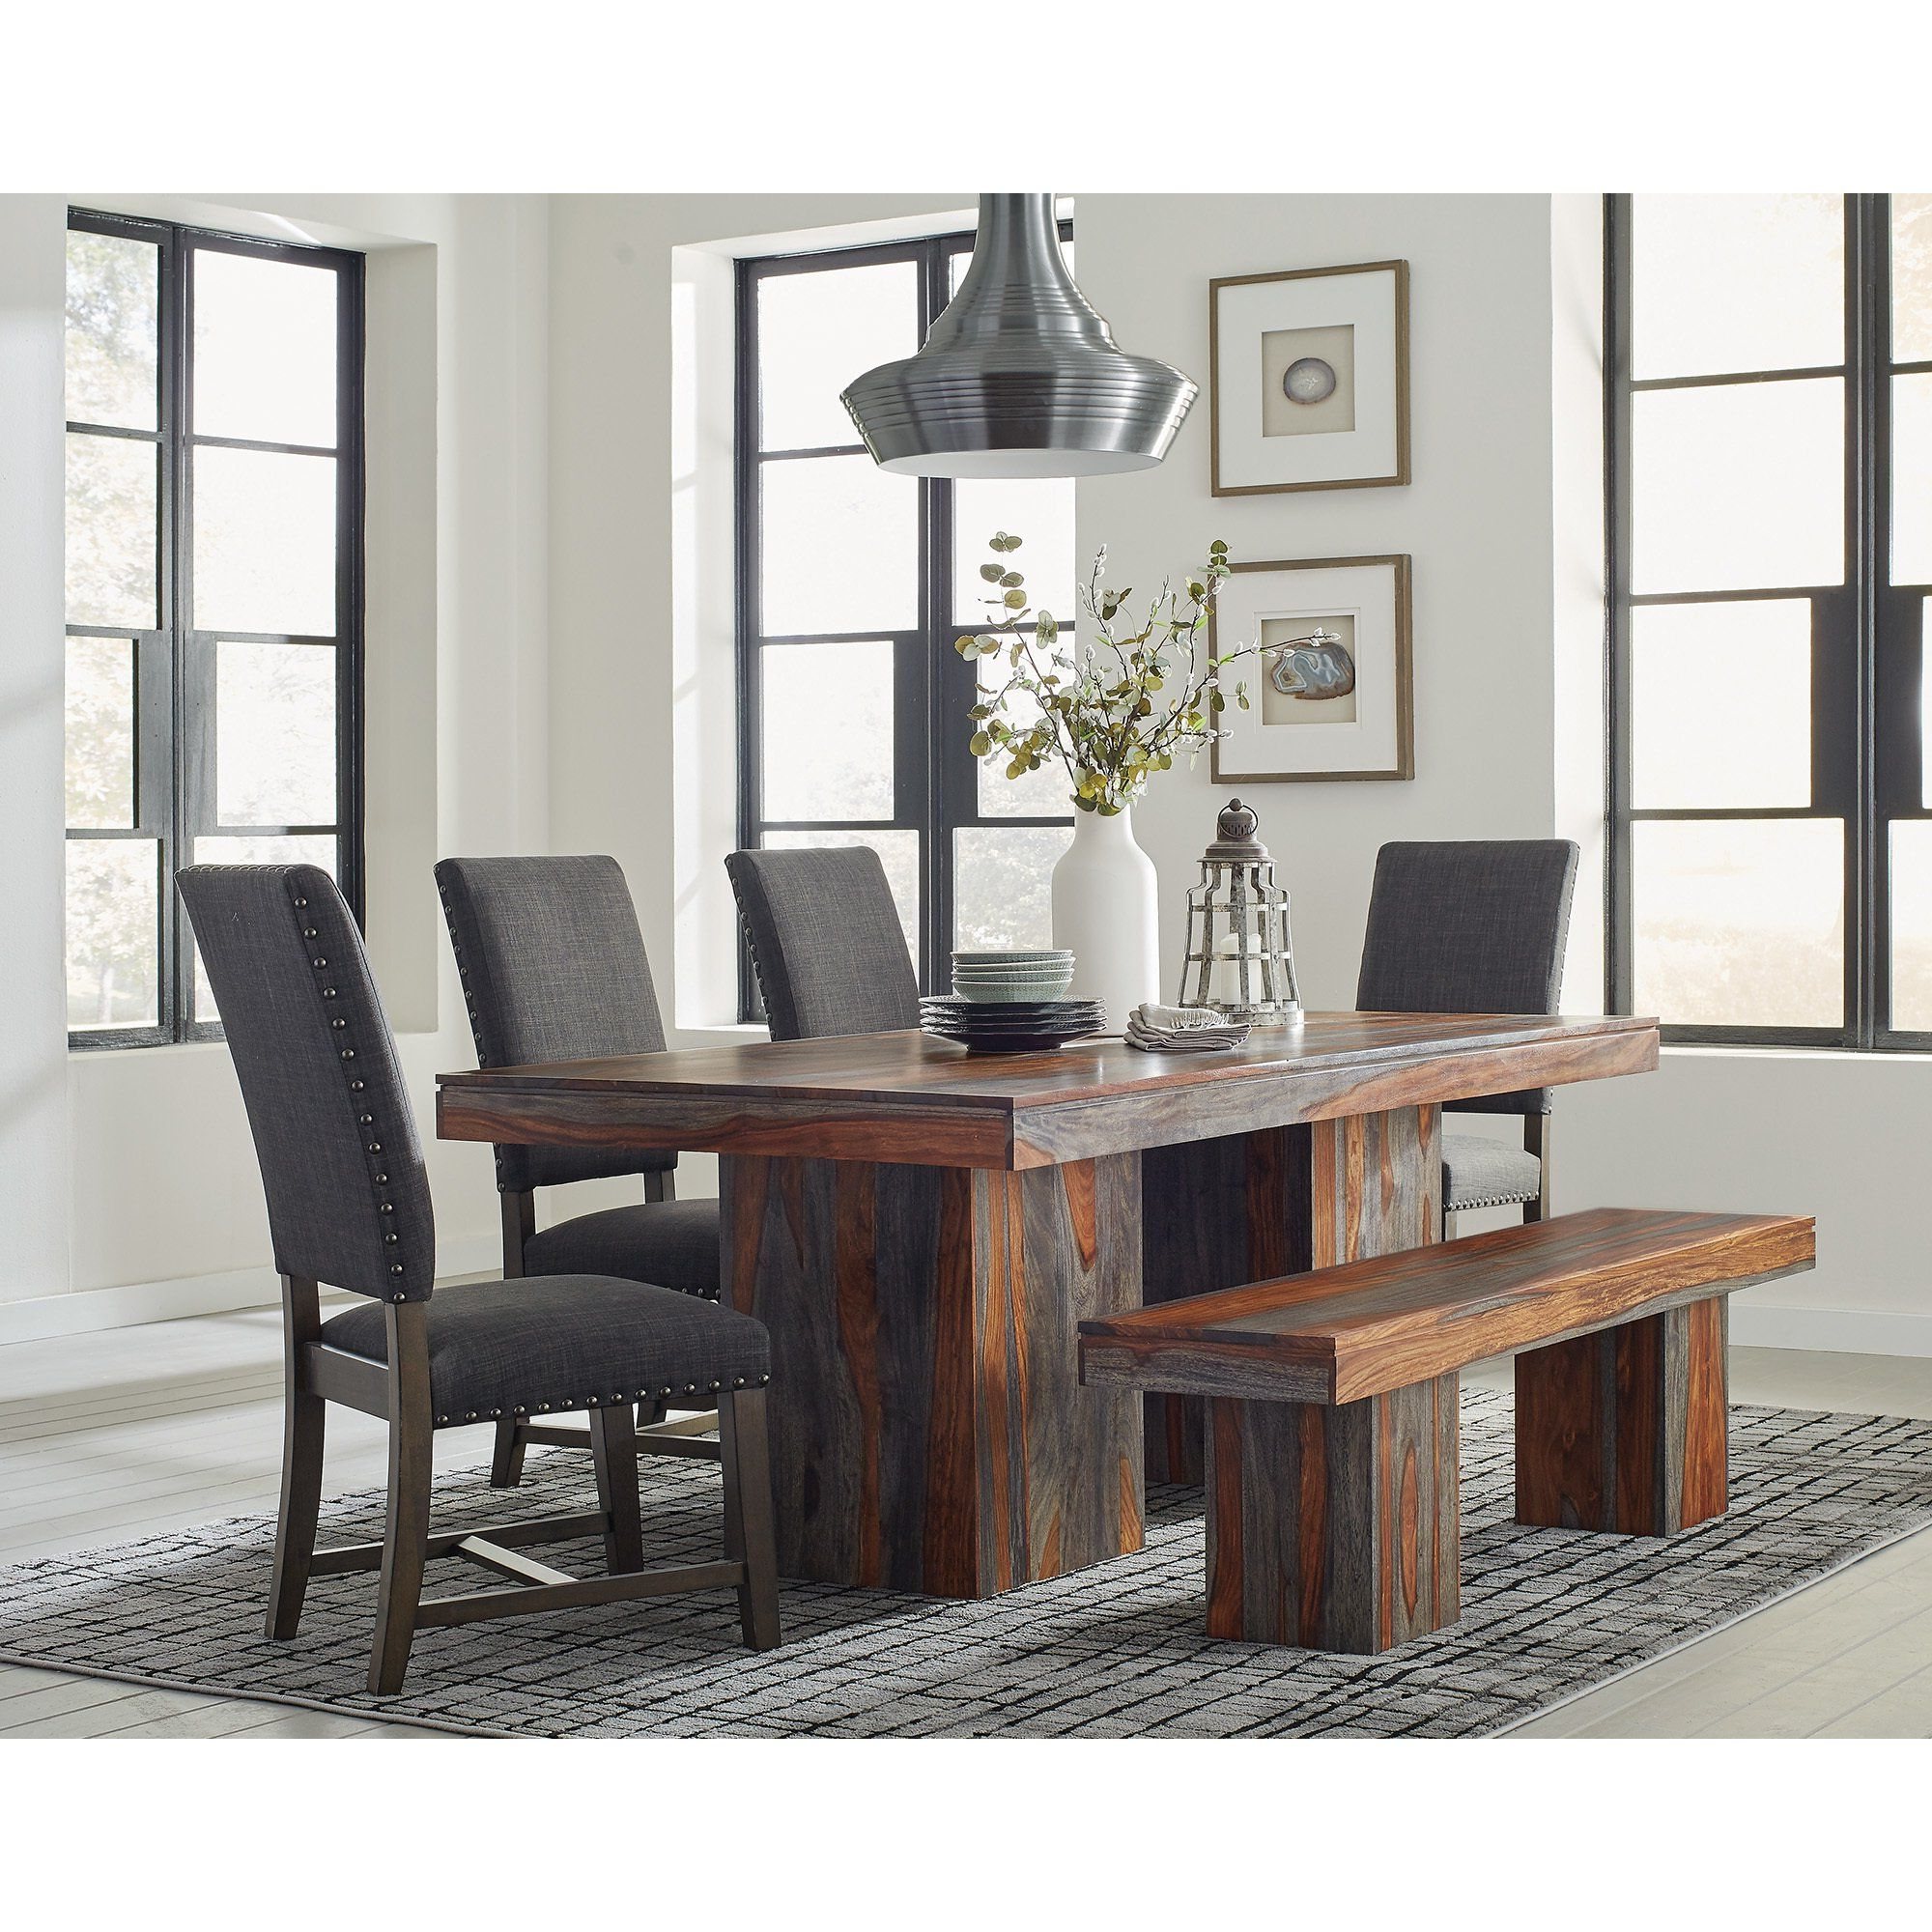 Charcoal Transitional 6 Seating Rectangular Dining Tables In Trendy Carbon Loft Ramsay 6 Piece Dining Set (grey), Gray In (View 26 of 30)